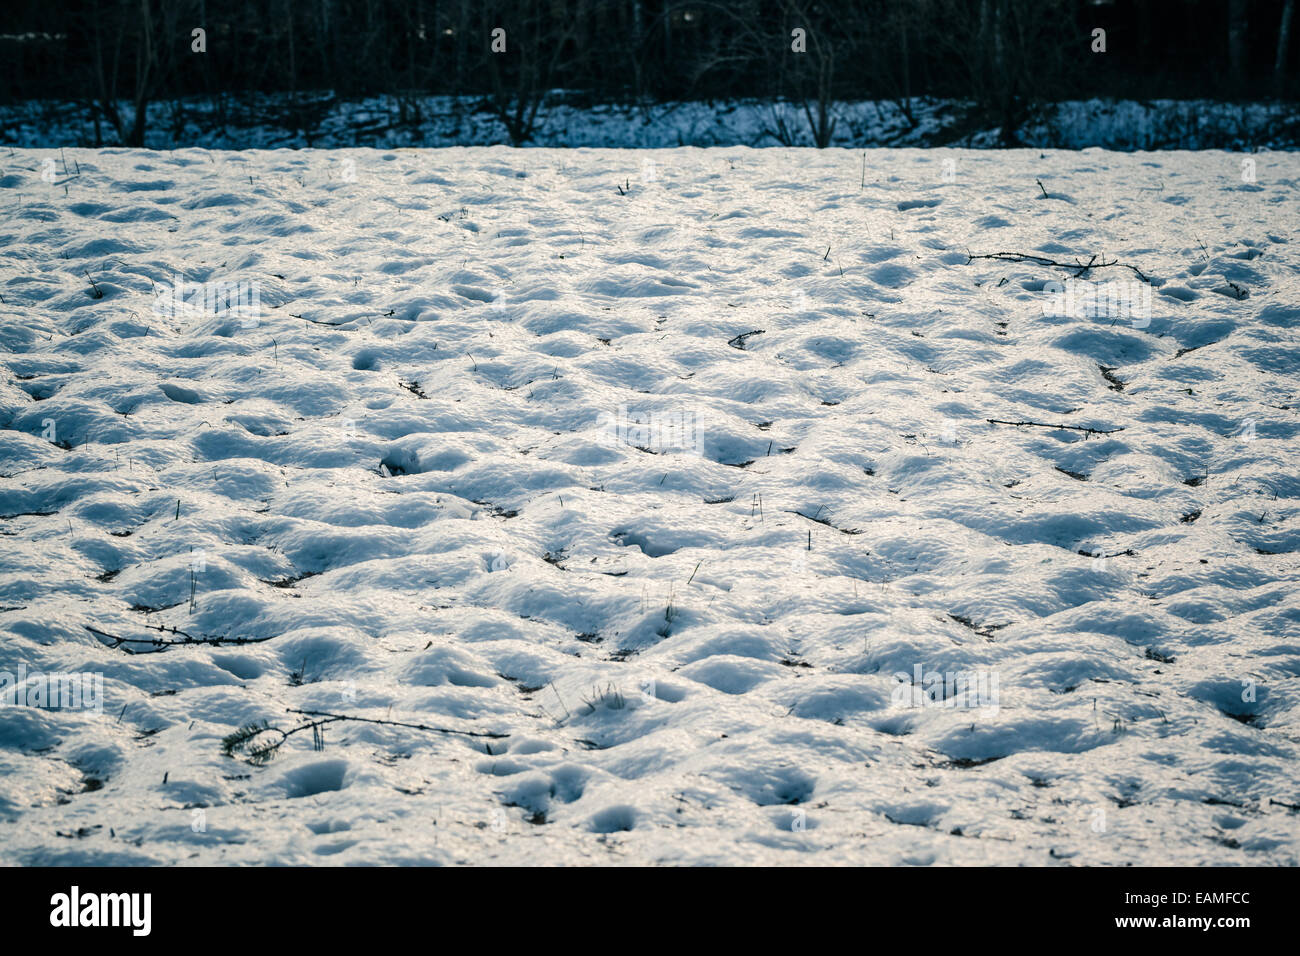 a snow covered groung in the woods with mounds - Stock Image